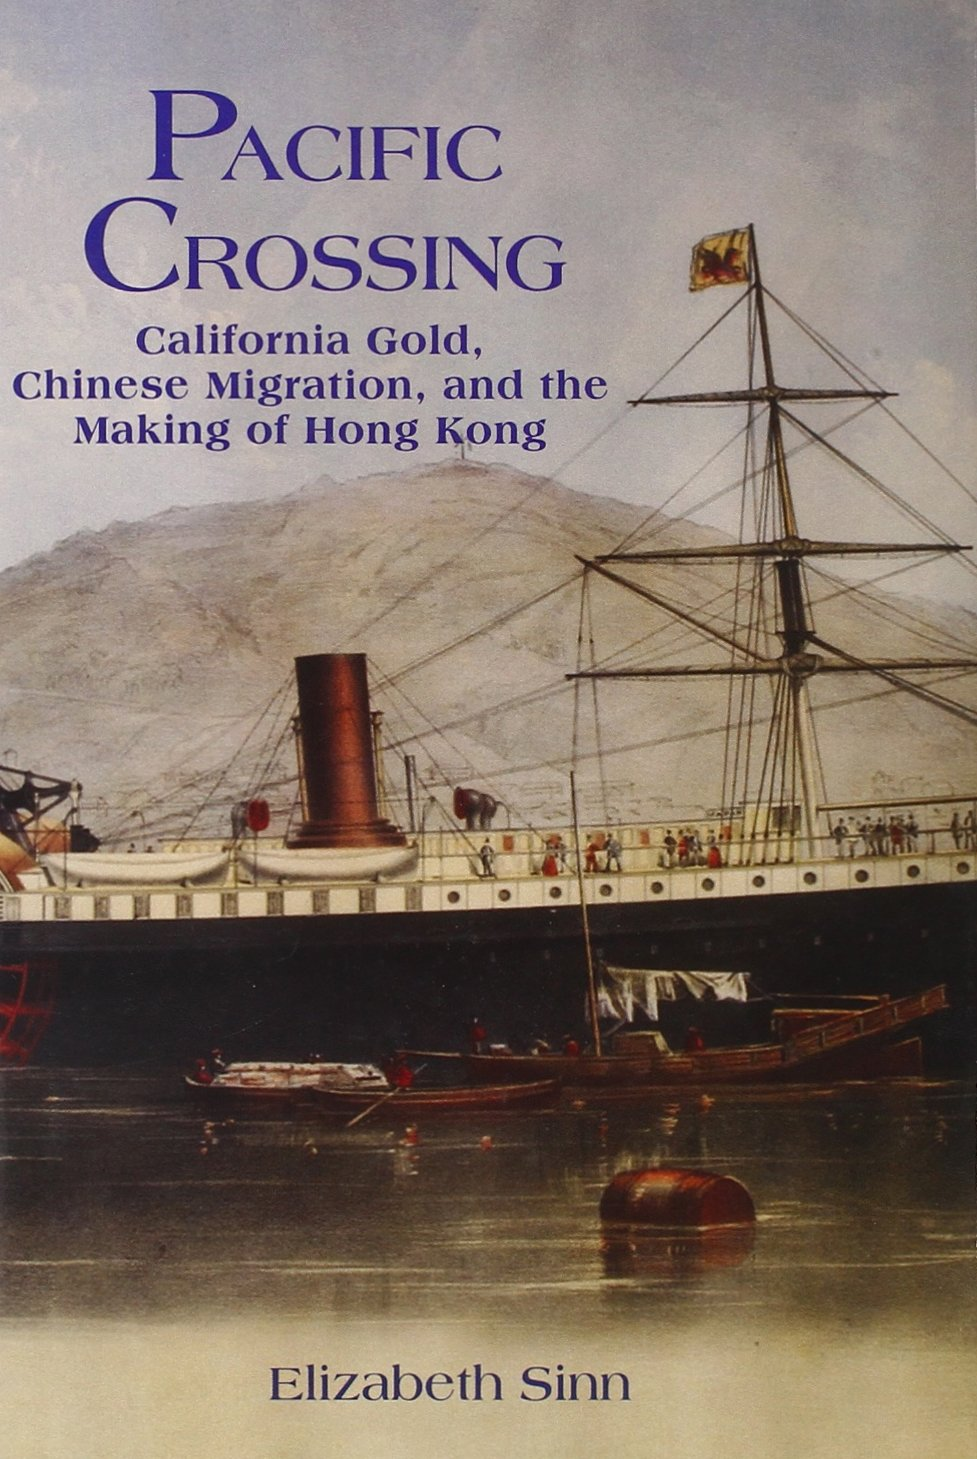 Download Pacific Crossing: California Gold, Chinese Migration, and the Making of Hong Kong pdf